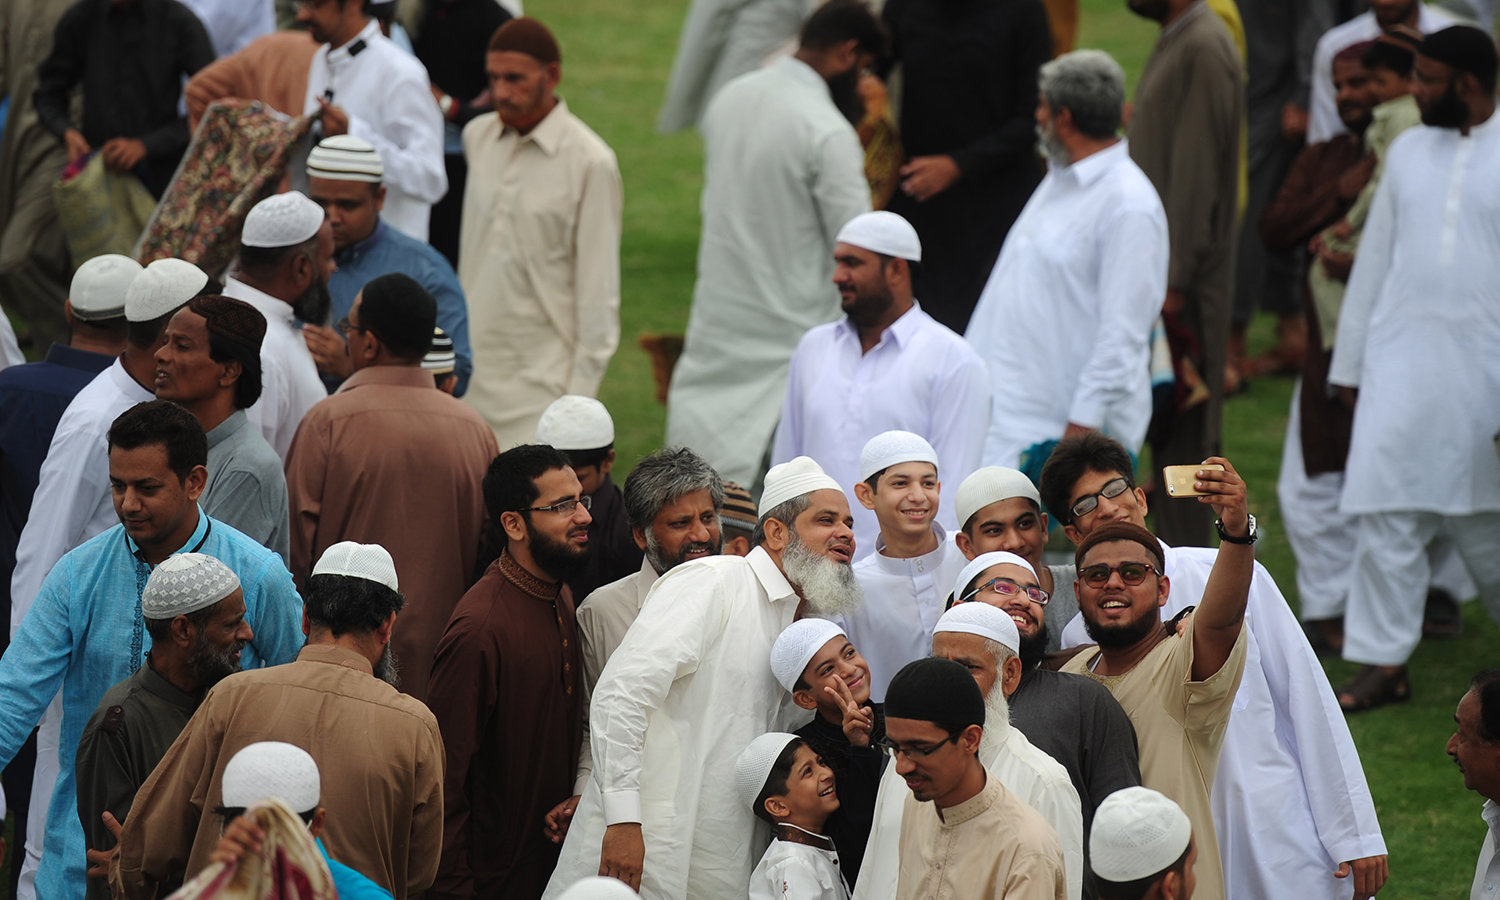 KARACHI: After the Eidul Fitr prayers, a group takes a selfie outside the mosque. — AFP/Asif Hassan